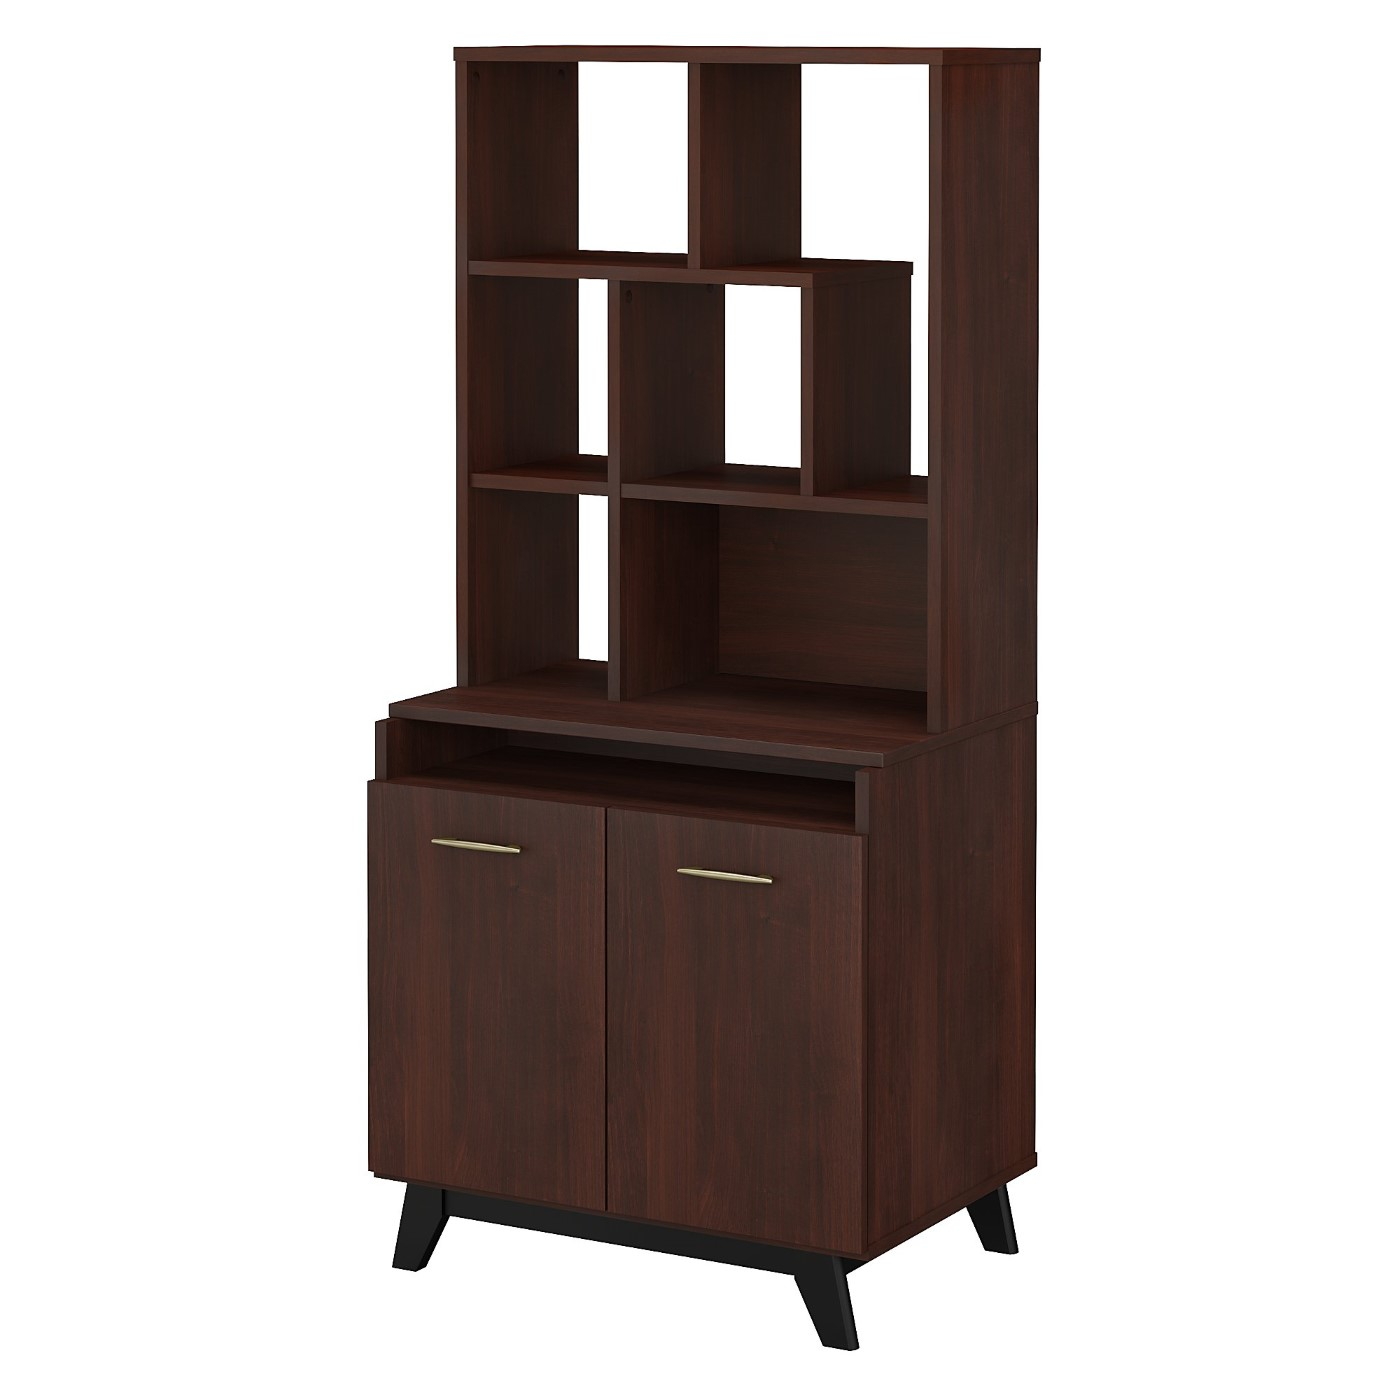 The kathy ireland� Centura 2 Door Accent Storage Cabinet with Bookcase Hutch is Sustainable Eco Friendly Furniture. Includes Free Shipping! 30H x 72L x 72W.